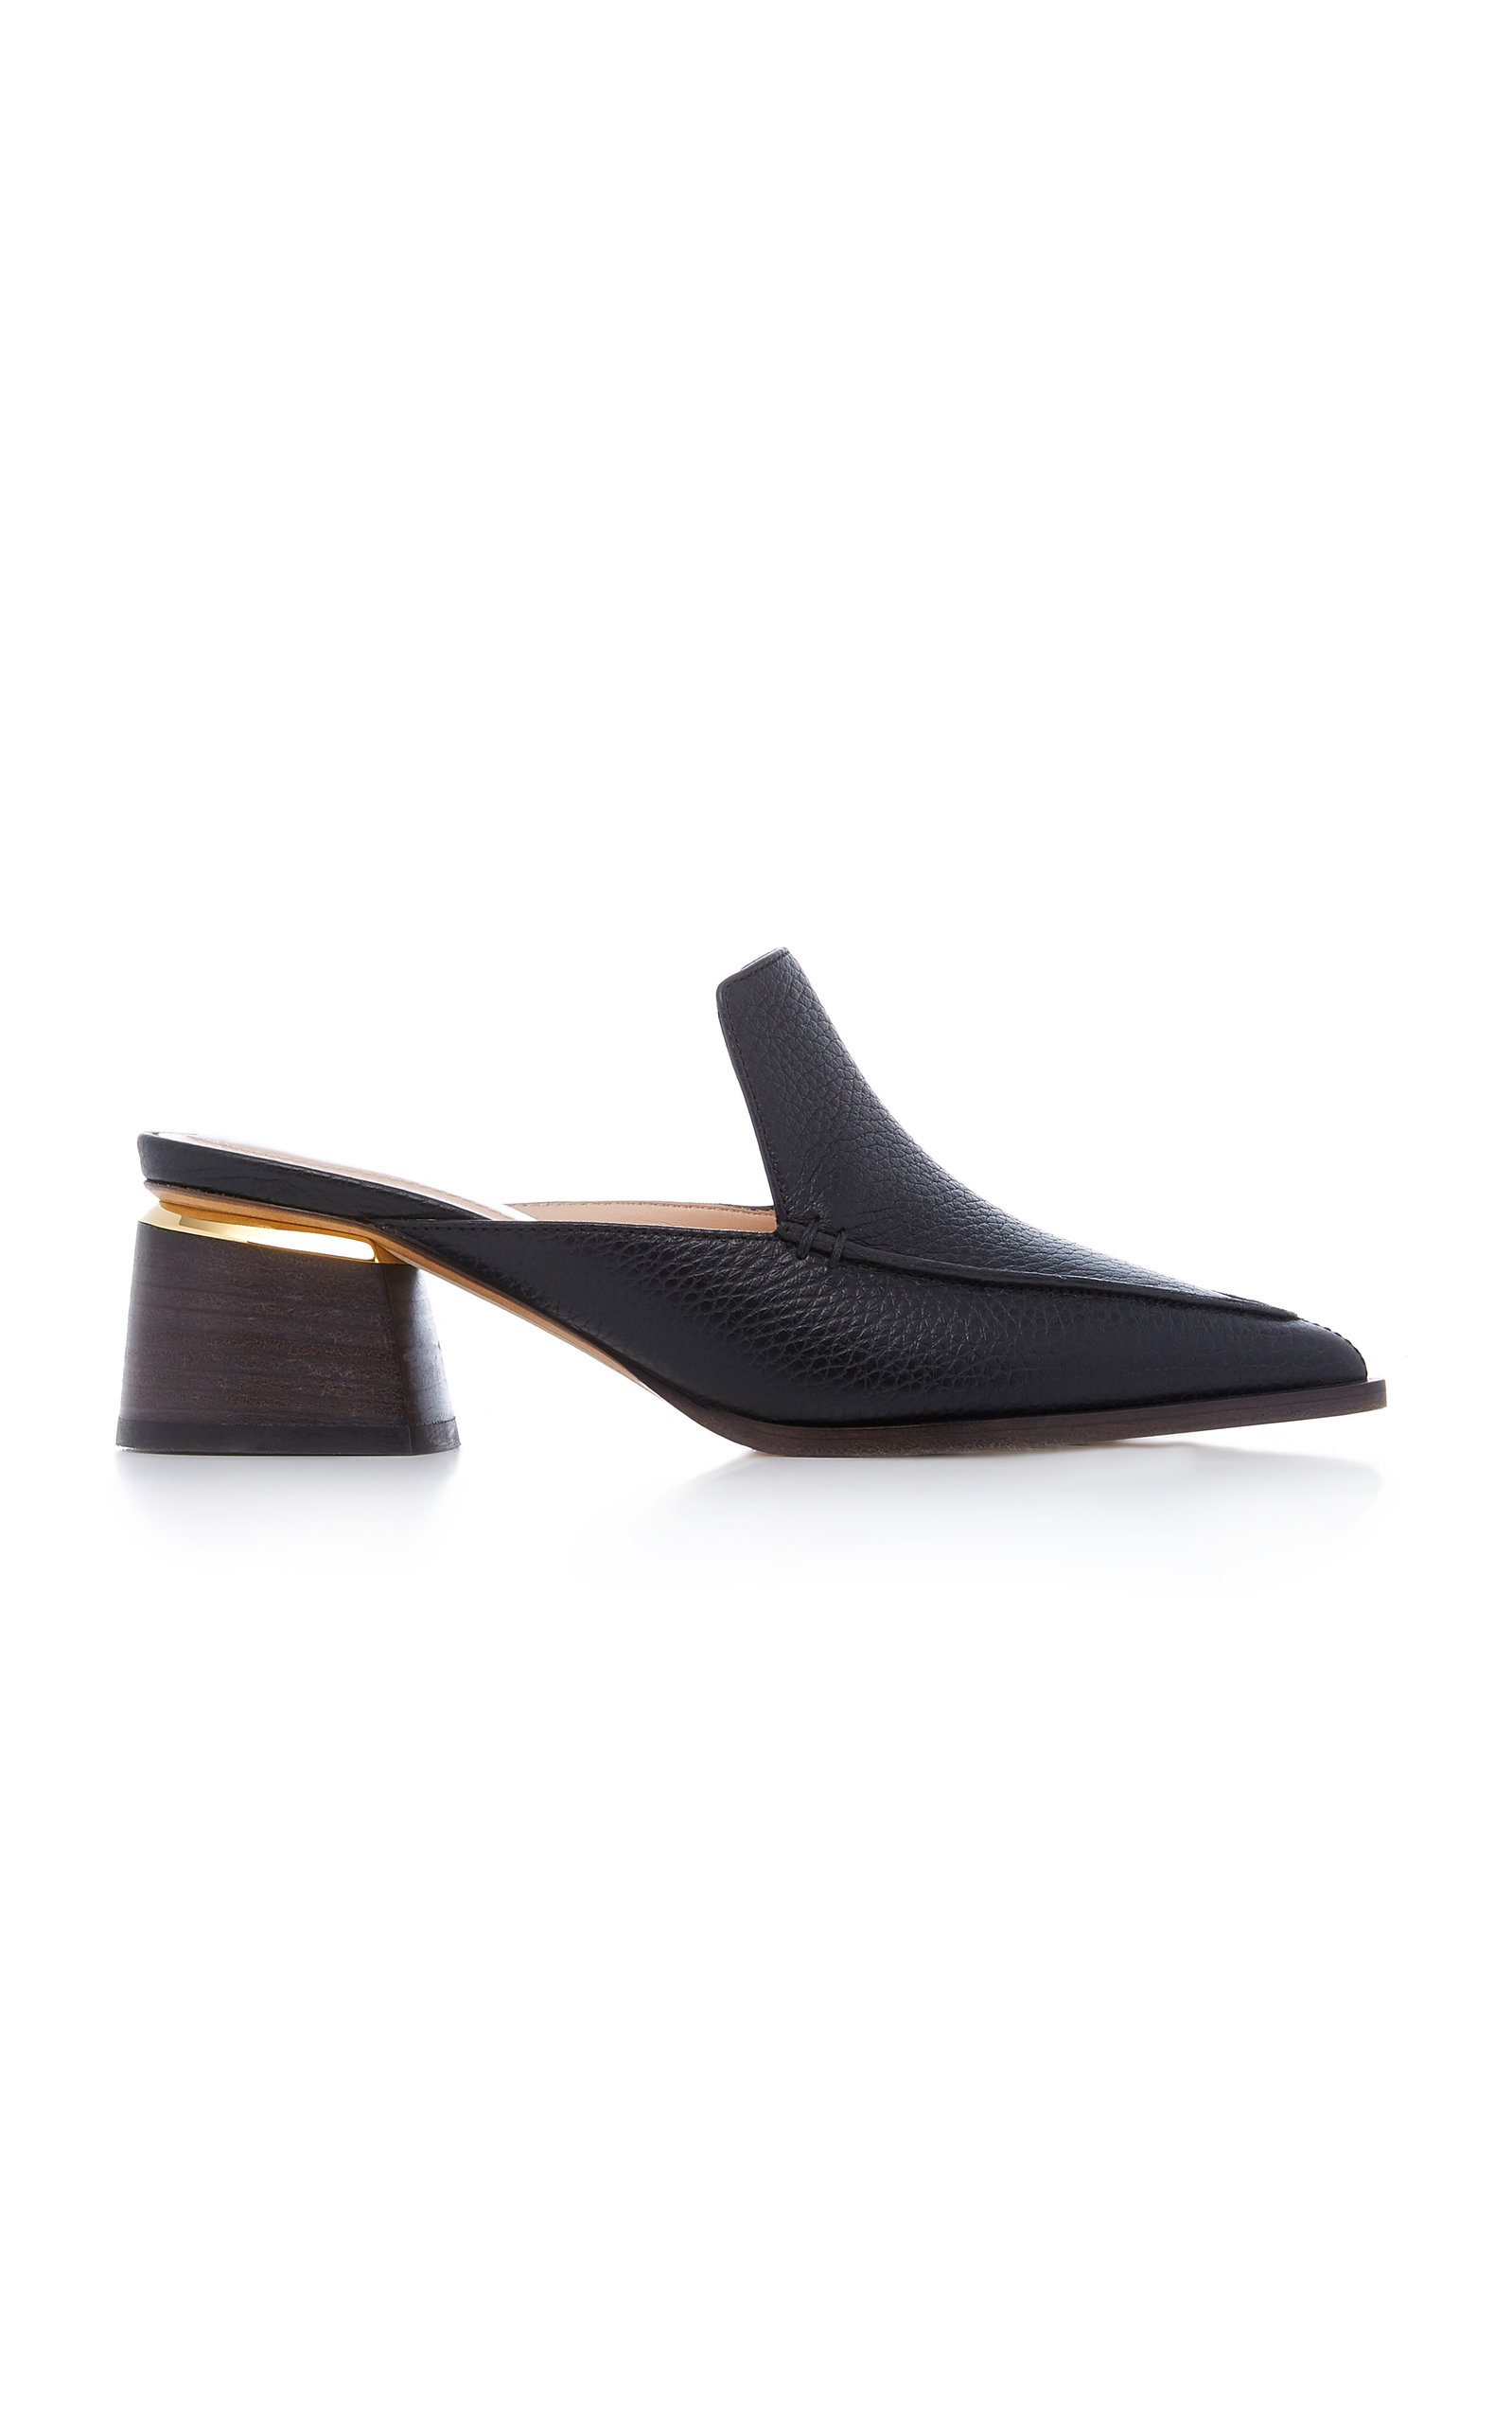 Beya Textured-Leather Mules in Black